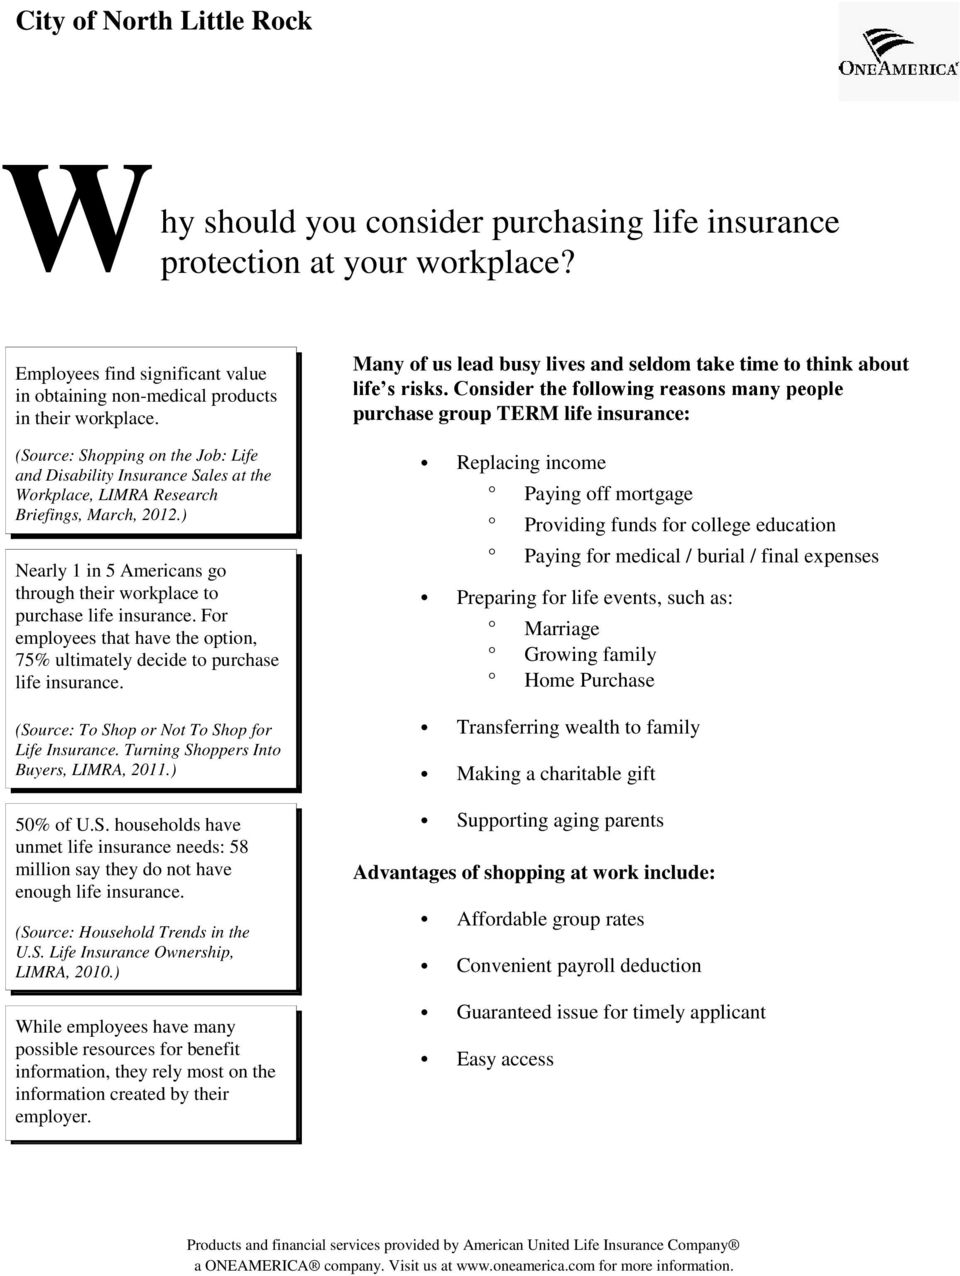 Consider the following reasons many people purchase group TERM life insurance: (Source: Shopping on the Job: Life and Disability Insurance Sales at the Workplace, LIMRA Research Briefings, March,